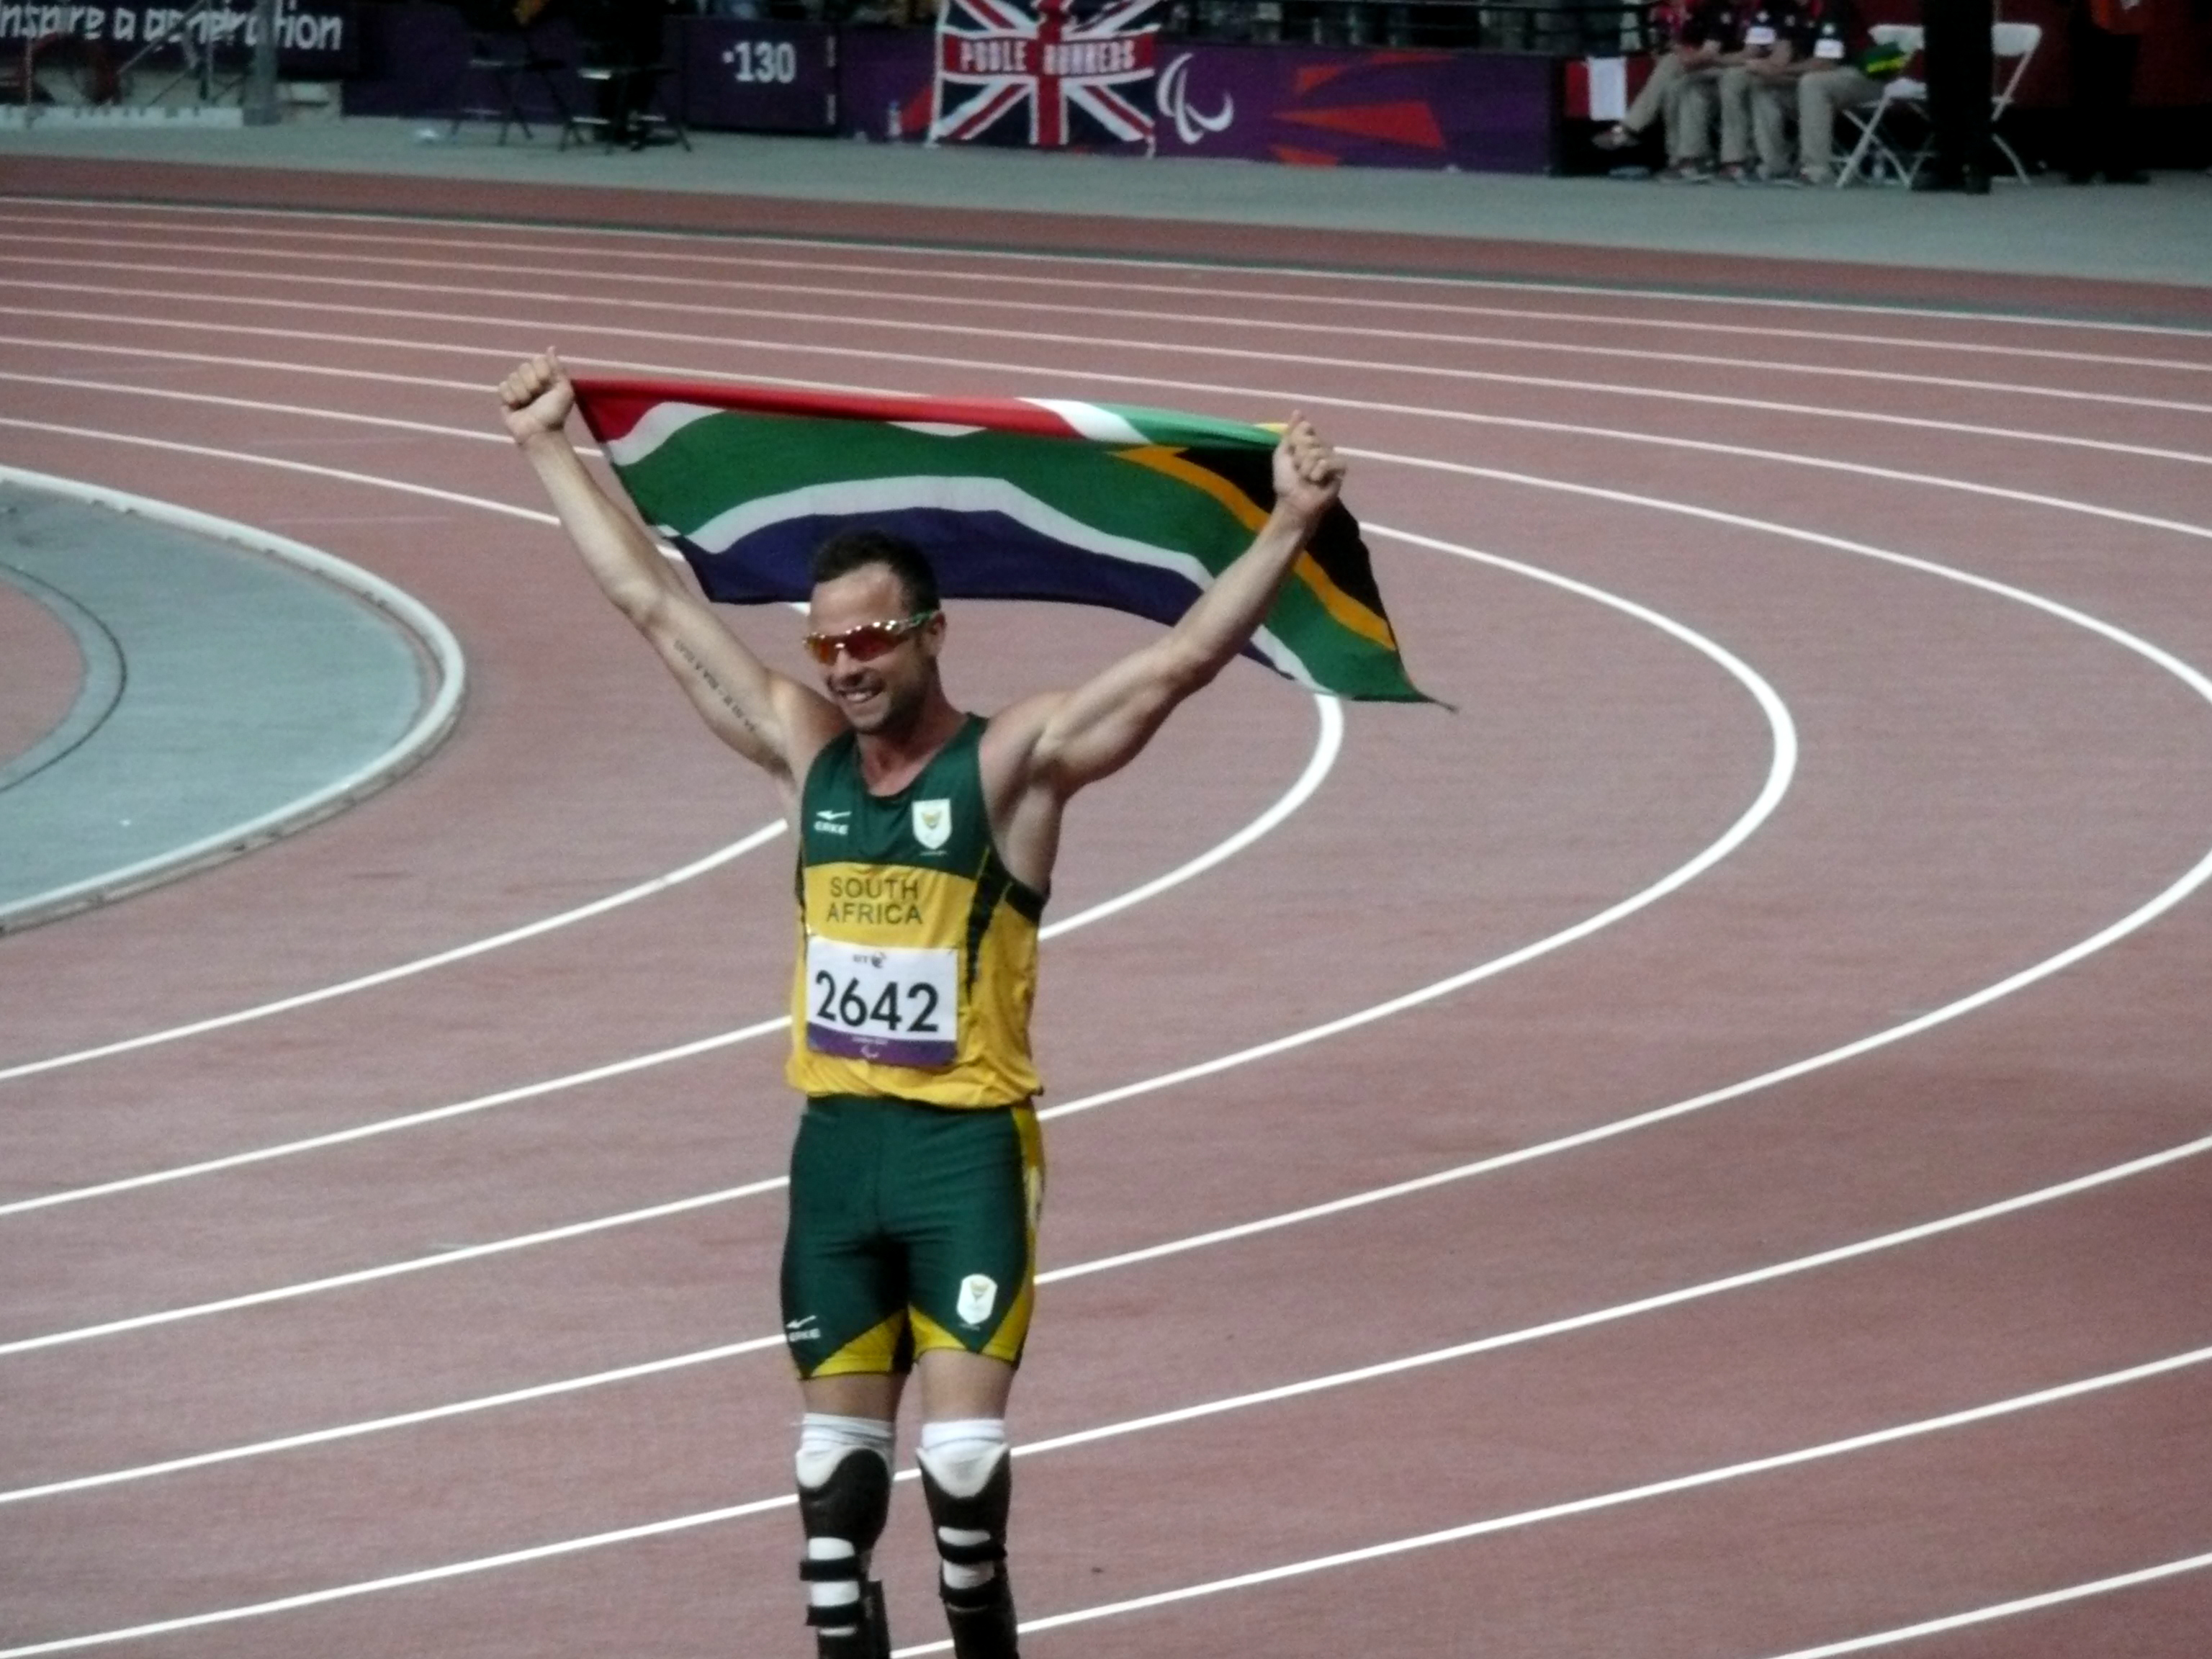 Oscar Pistorius winning the 400 meters T44 final